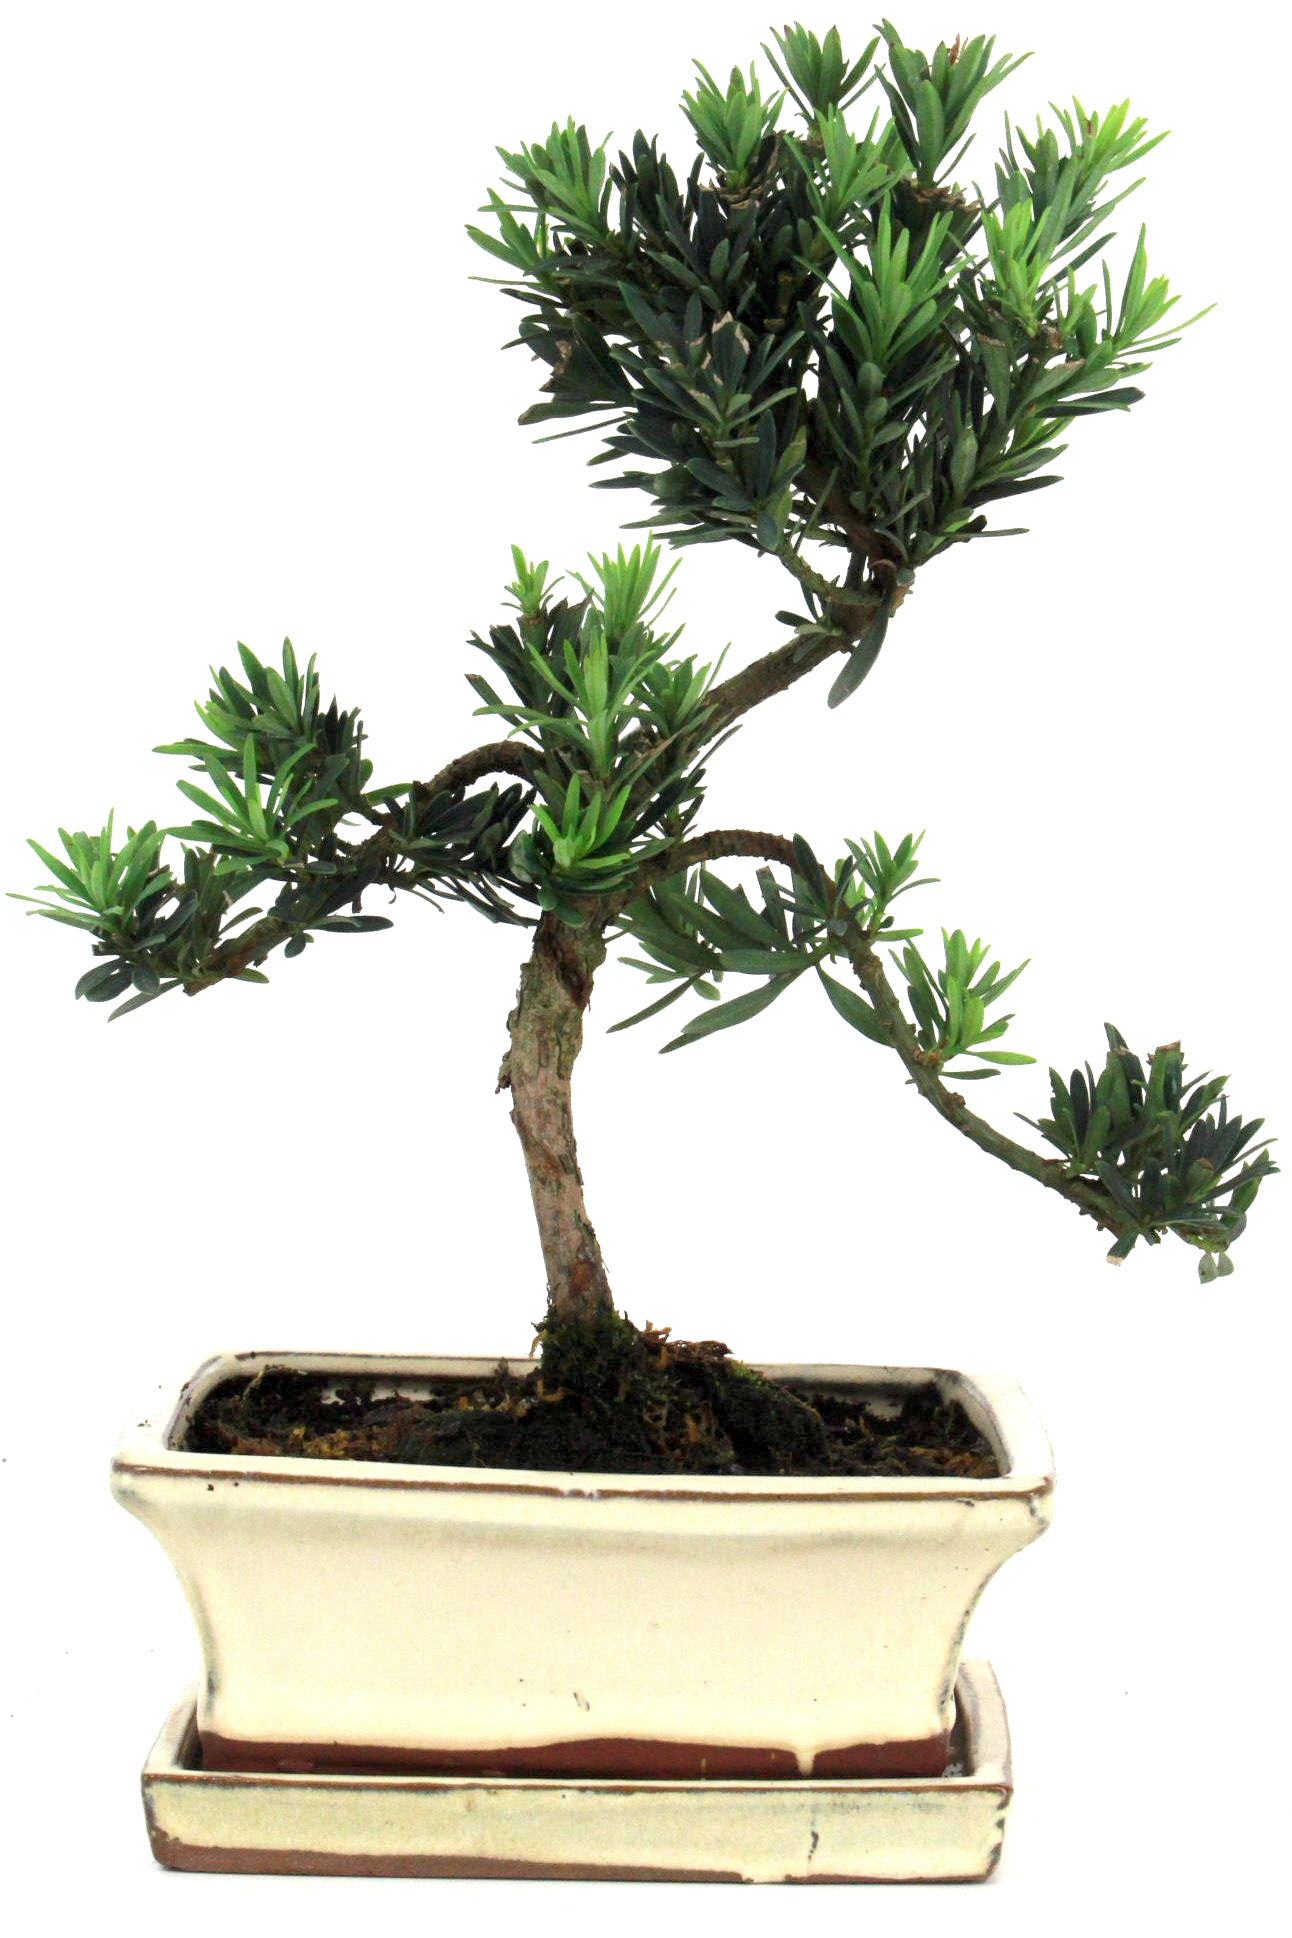 Steineibe bonsai 30 35 cm 1627 bei oyaki bonsai kaufen for Bonsai onlineshop